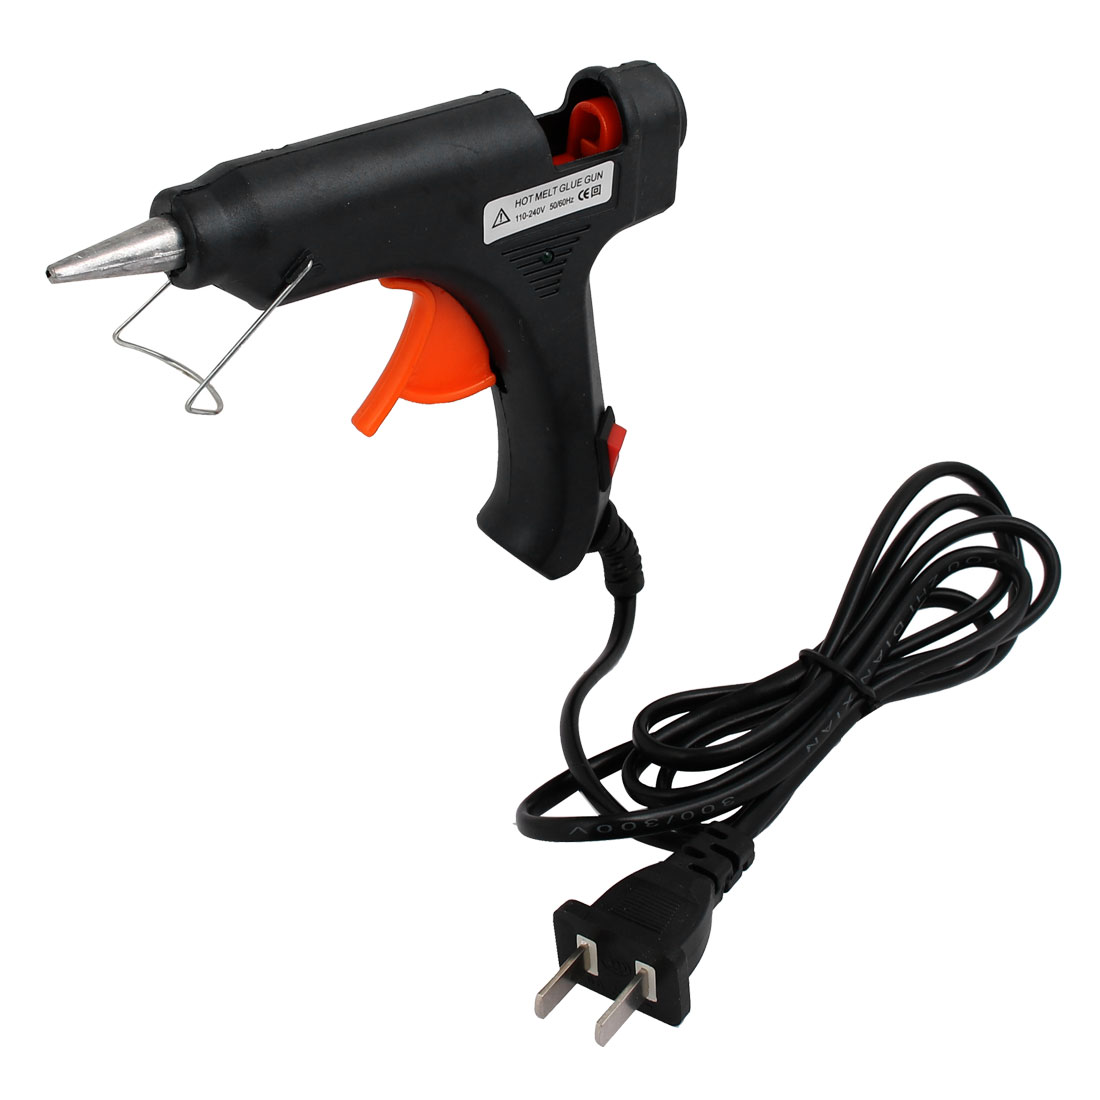 Unique Bargains AC110-240V 20W Electric Heating Hot Melt Glue  US Plug Repair Tool Black